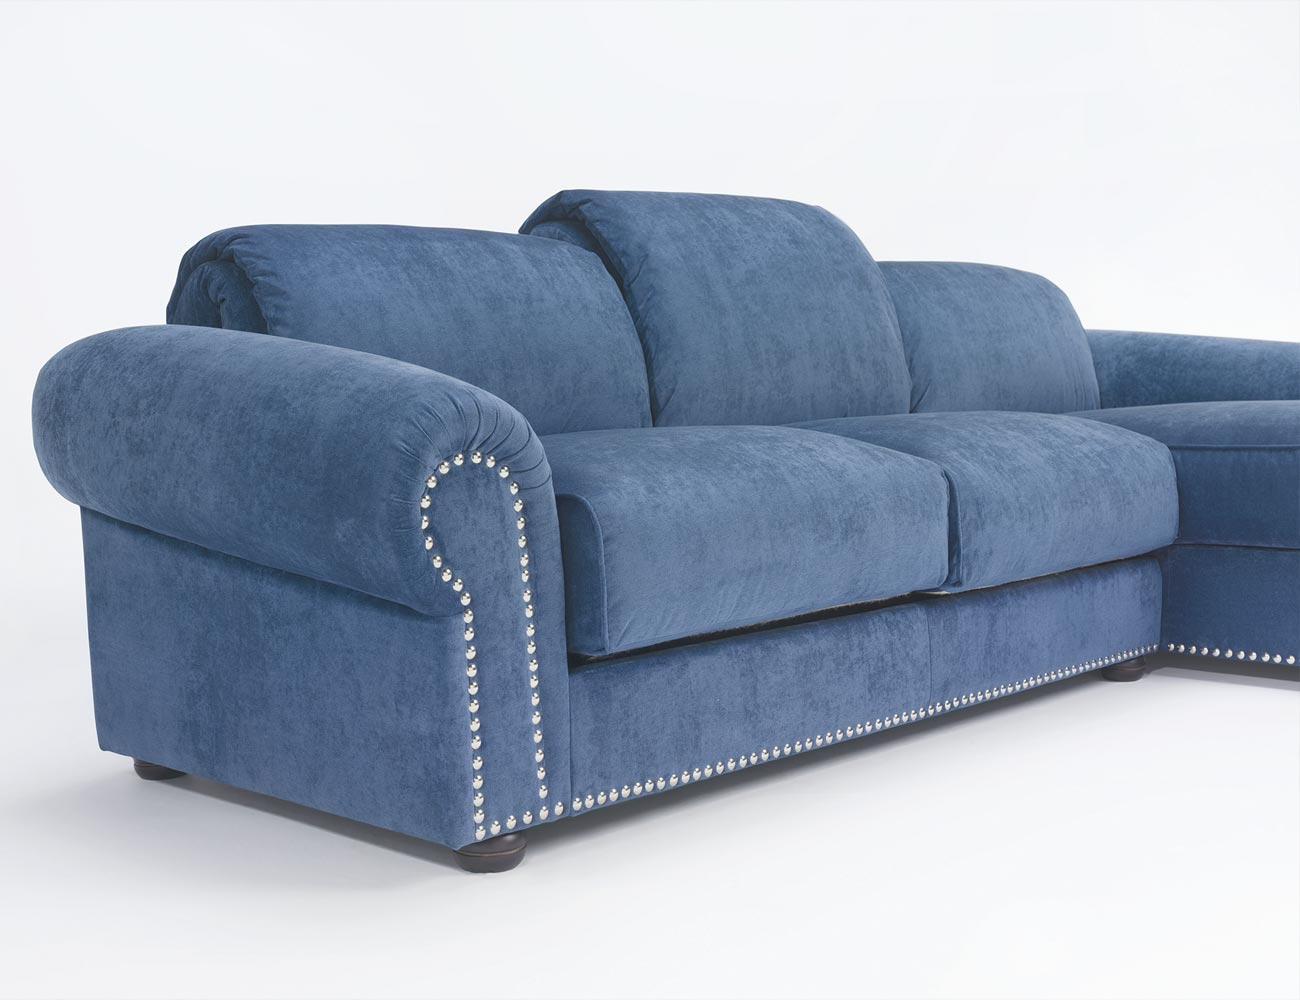 Sofa chaiselongue gran lujo decorativo azul 141